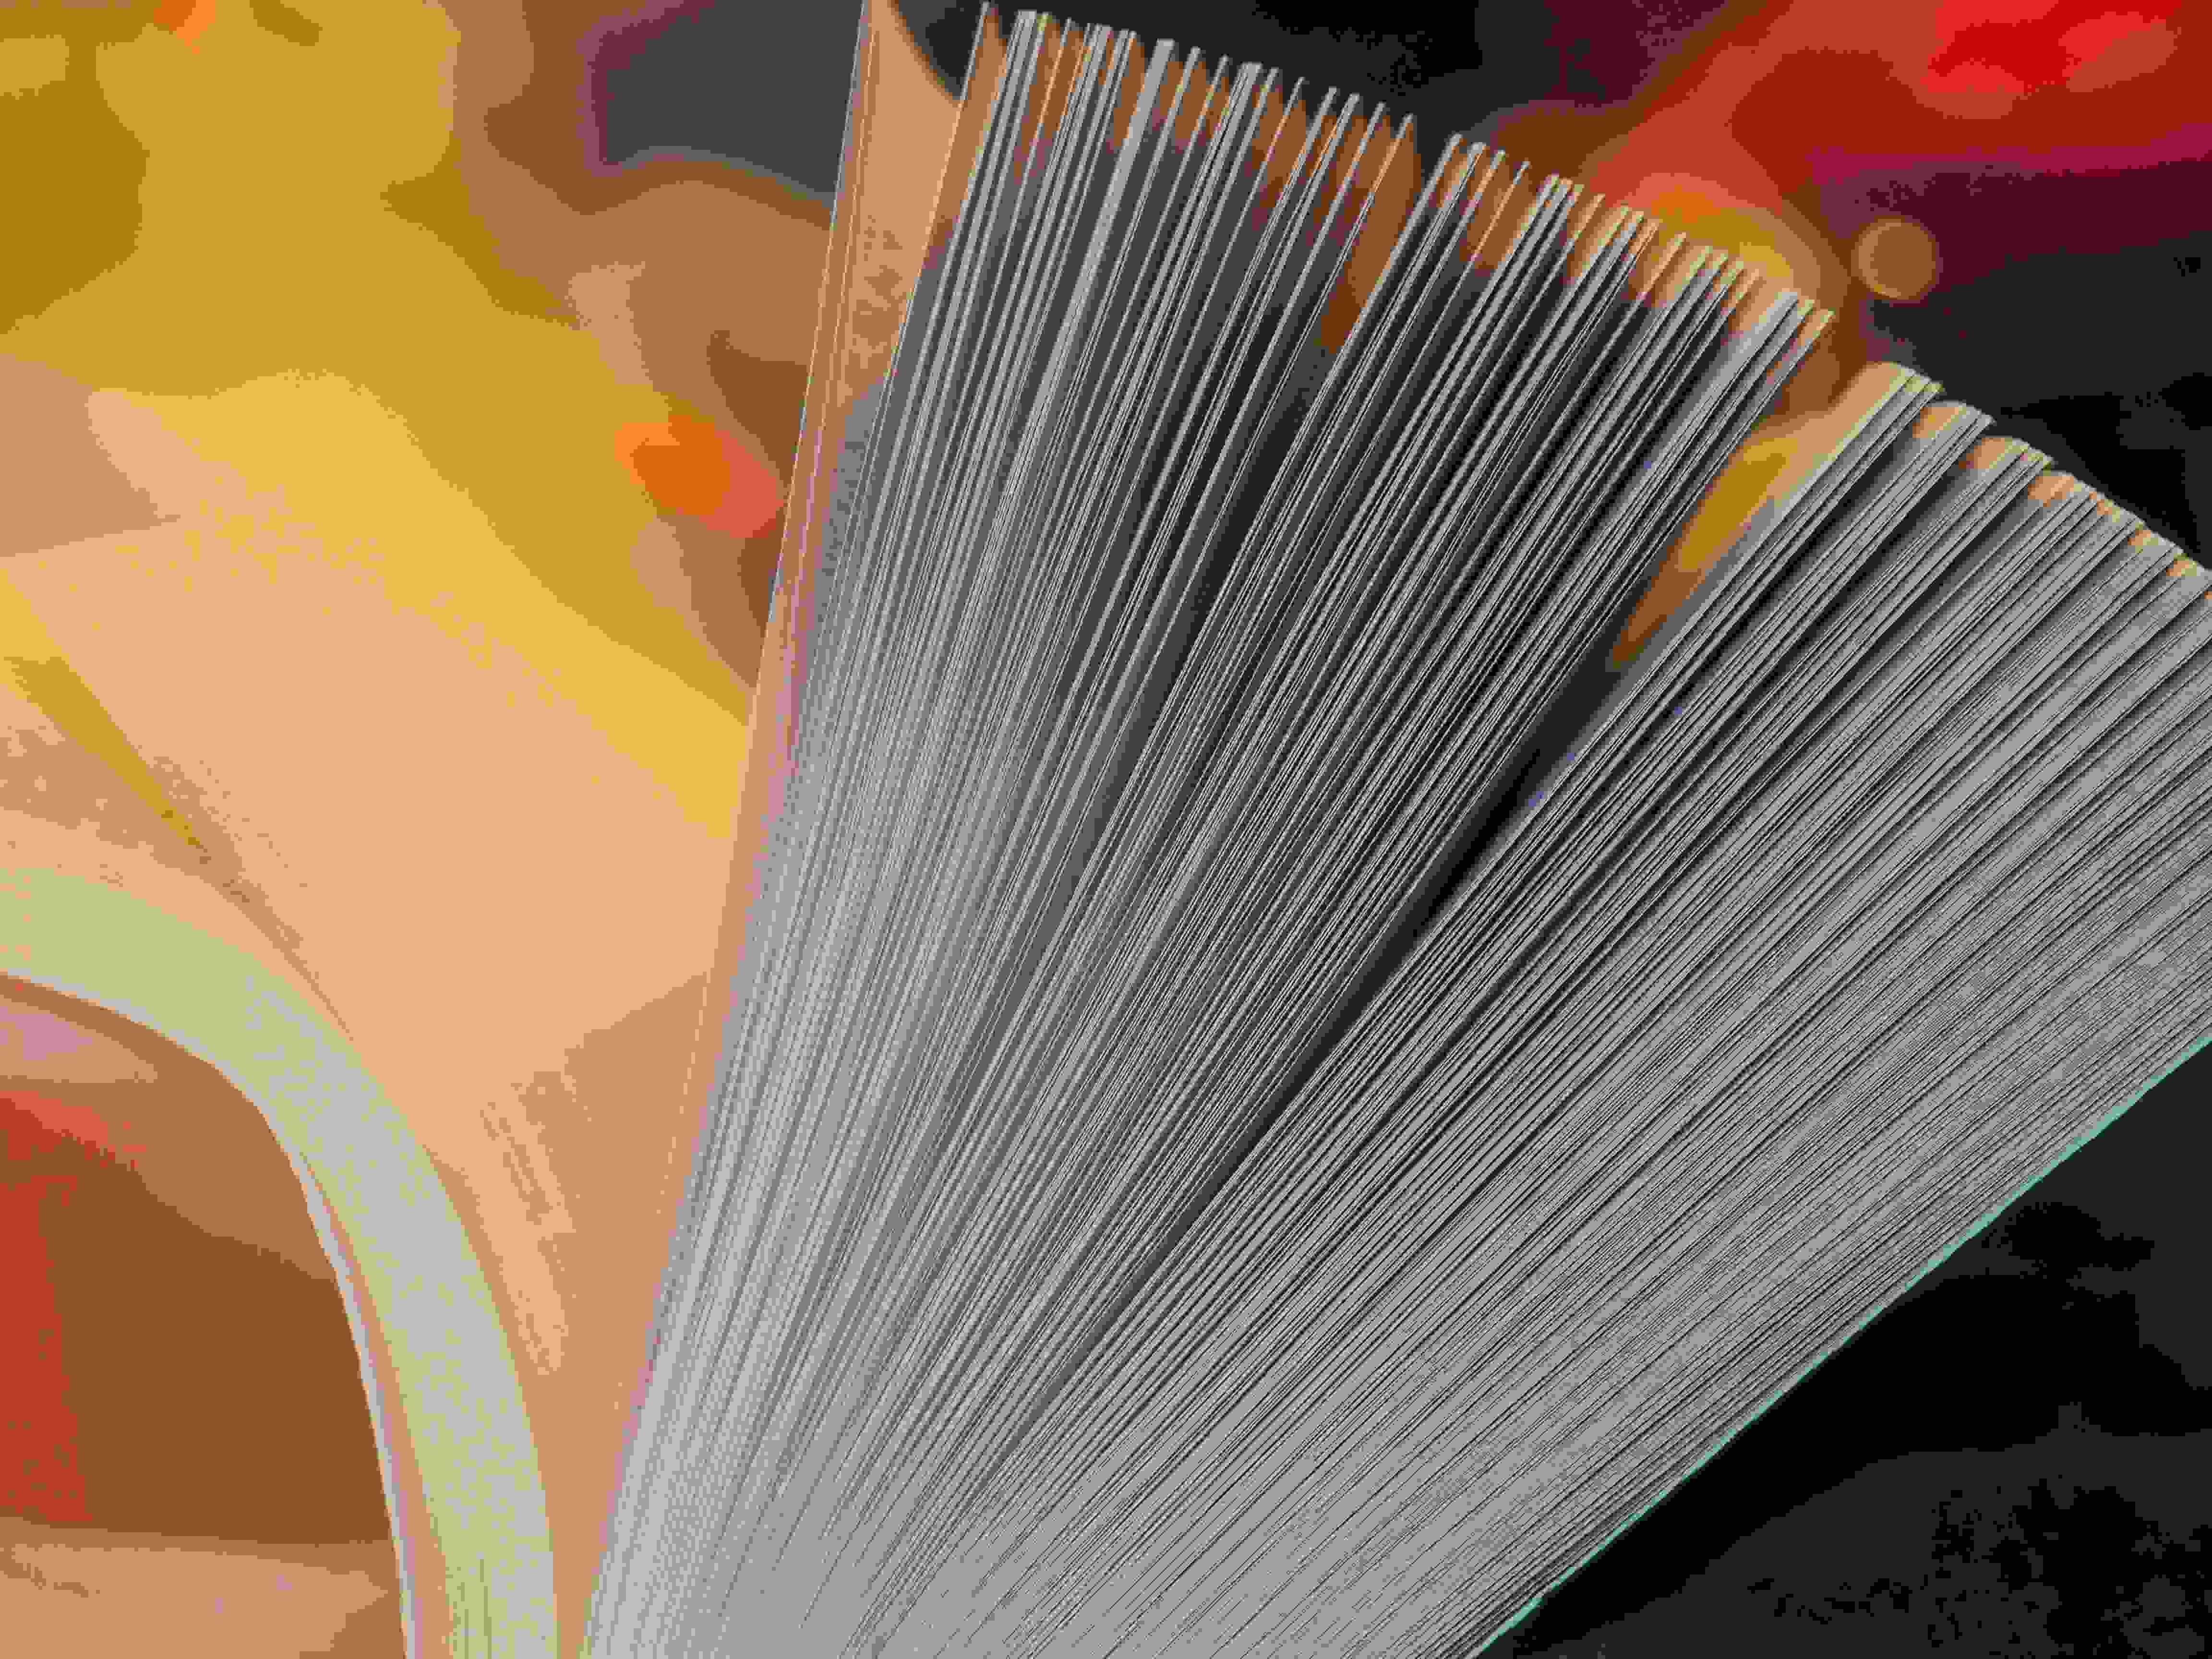 Abstract turning pages of a book image